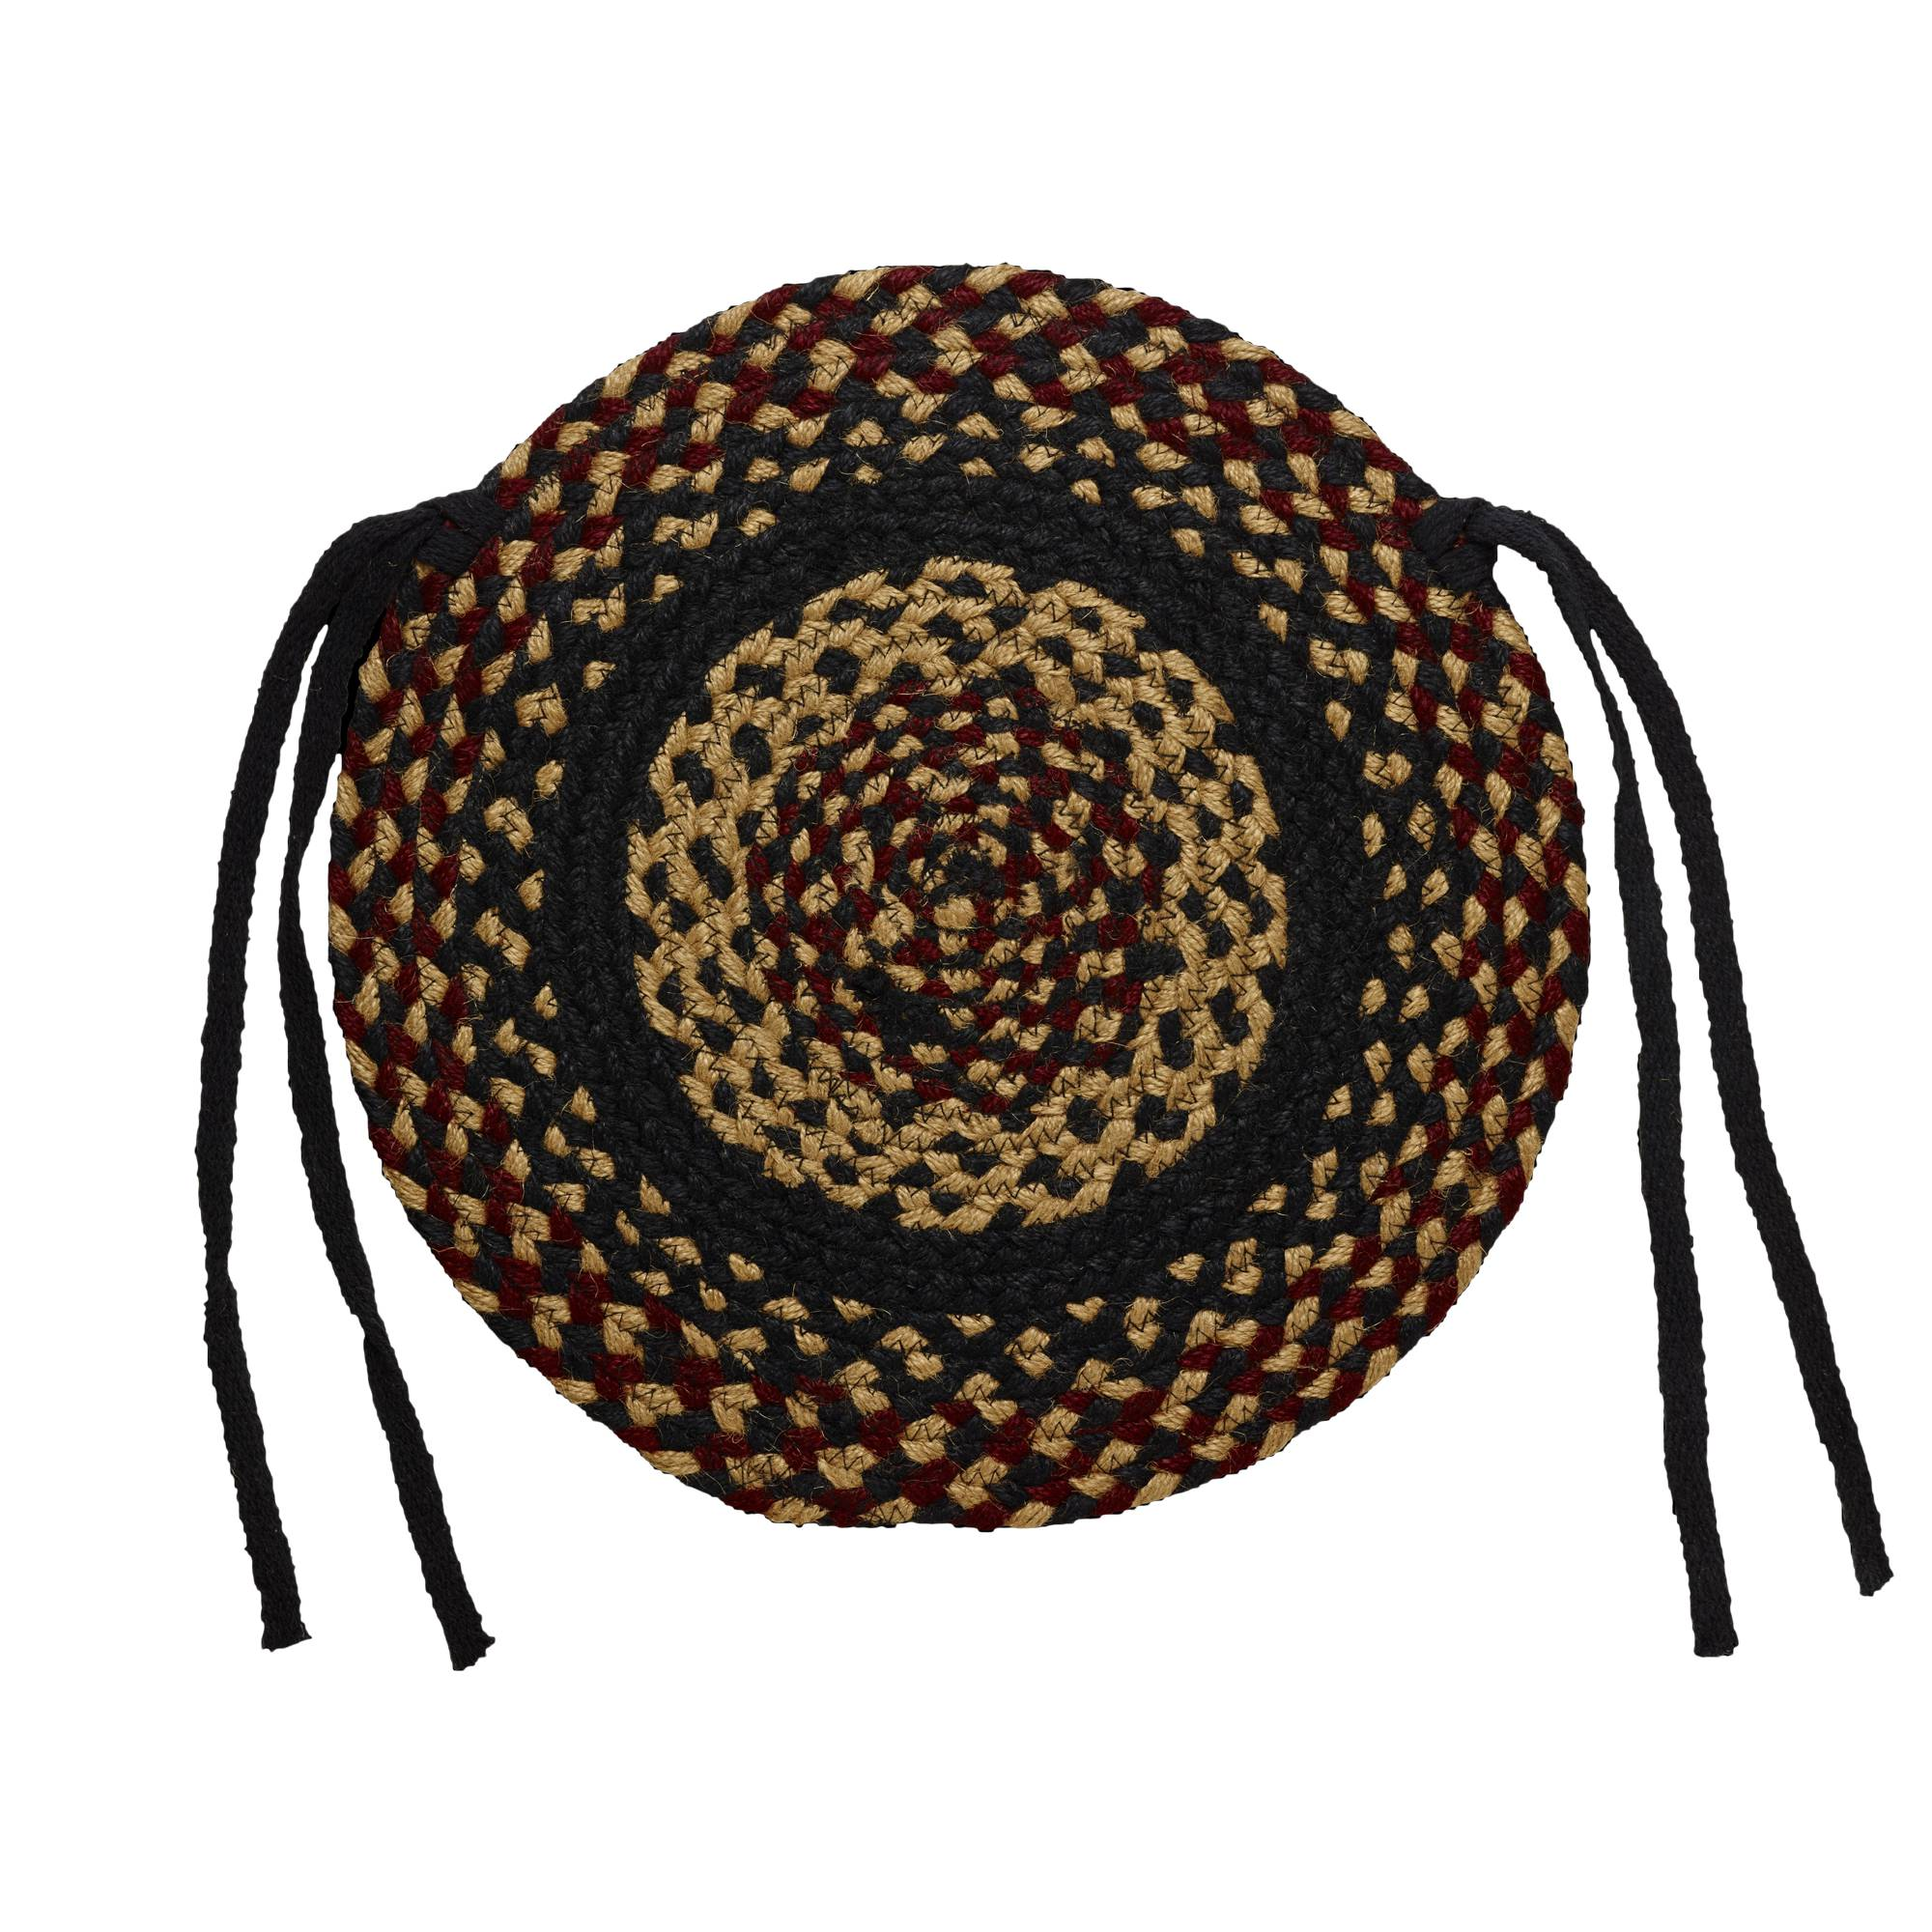 Nice Braided Chair Pads Country Primitive By IHF   Set Of 4   Walmart.com